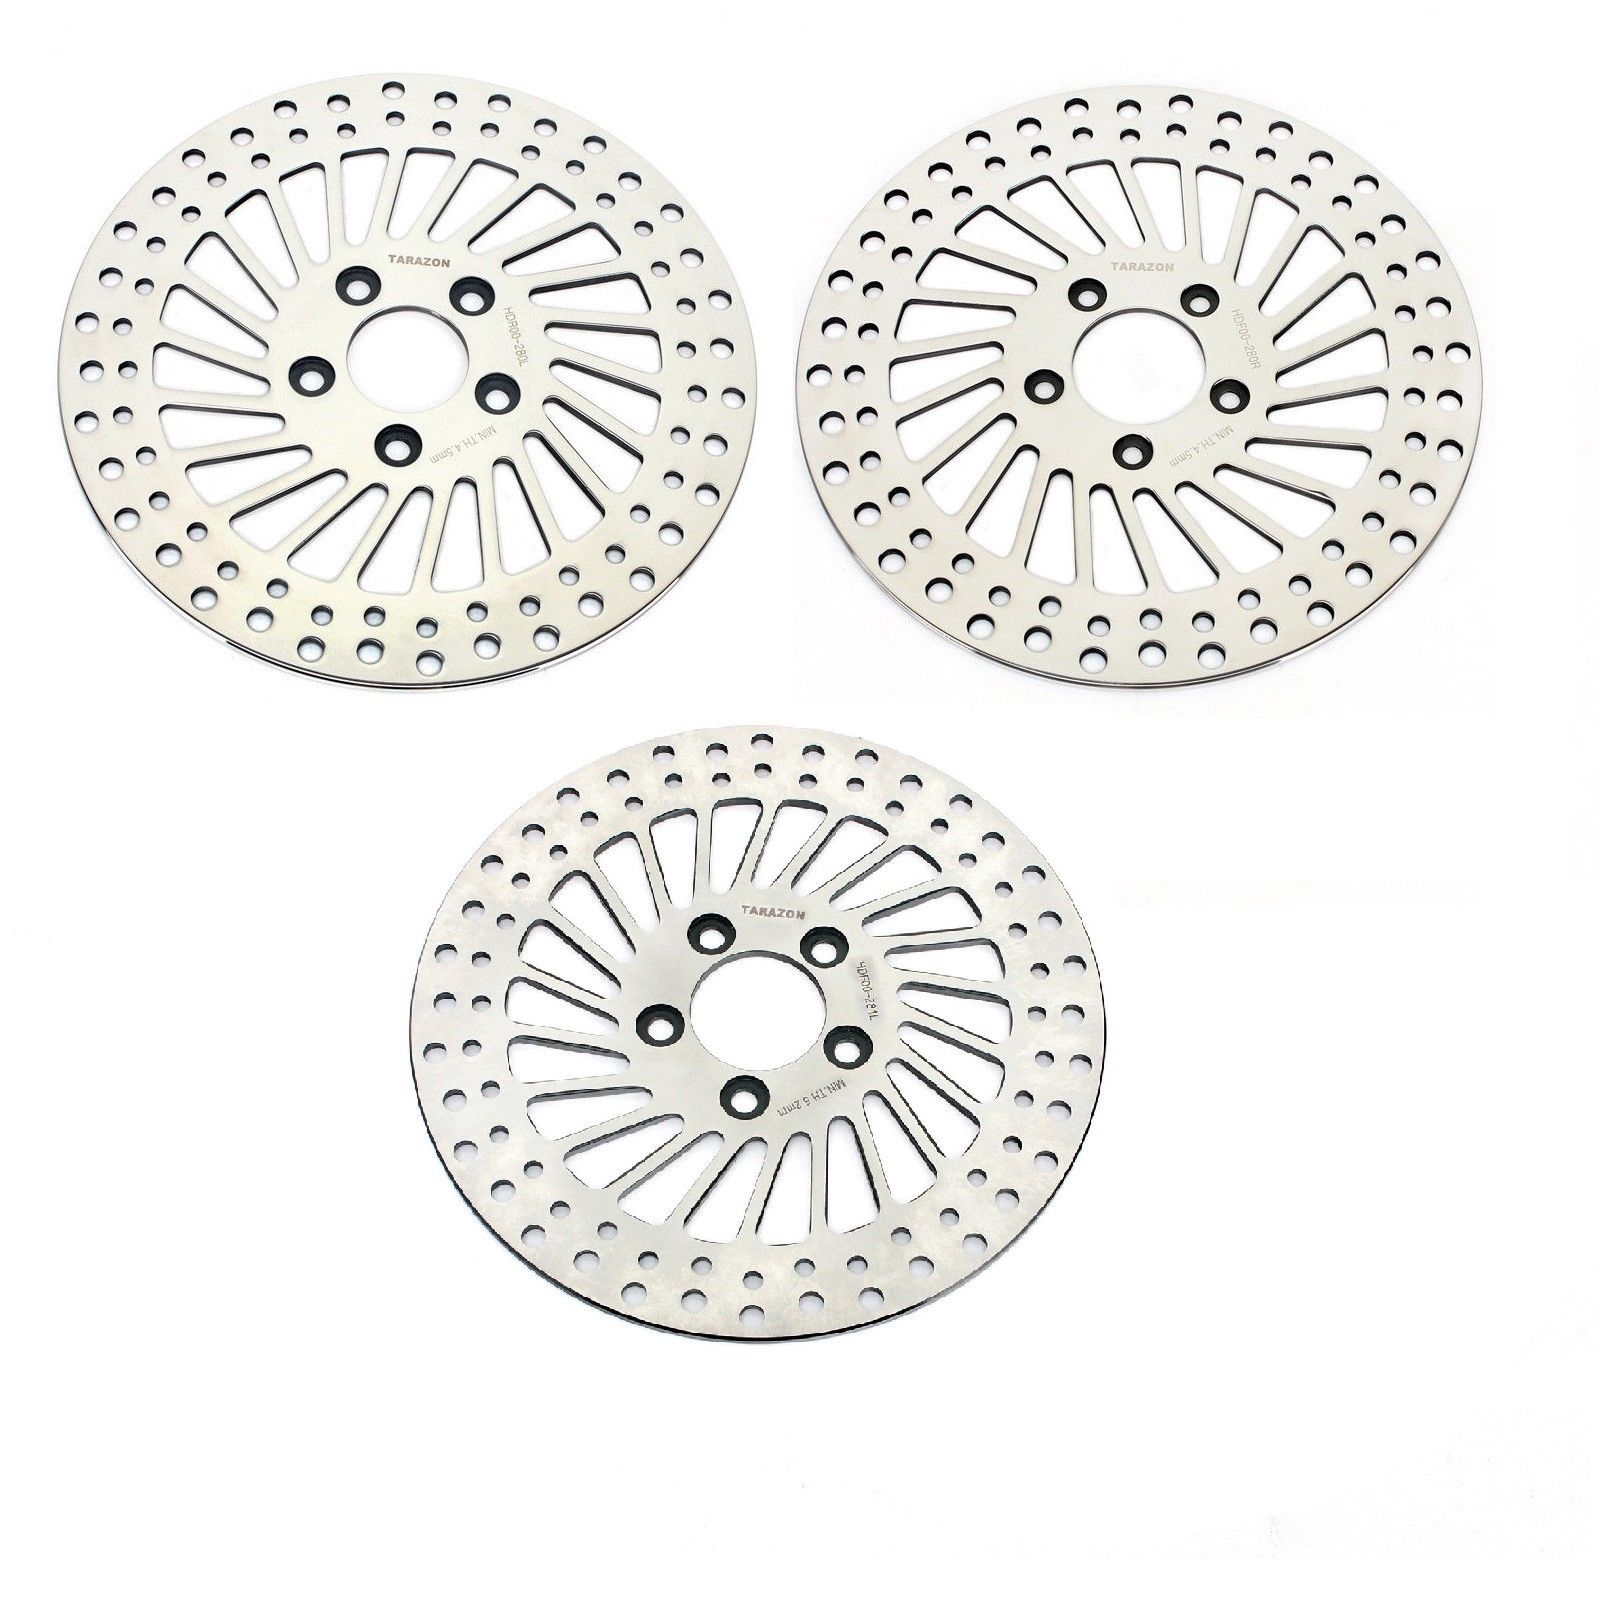 HARLEY FRONT & REAR BRAKE DISC ROTORS Roadking Streetglide